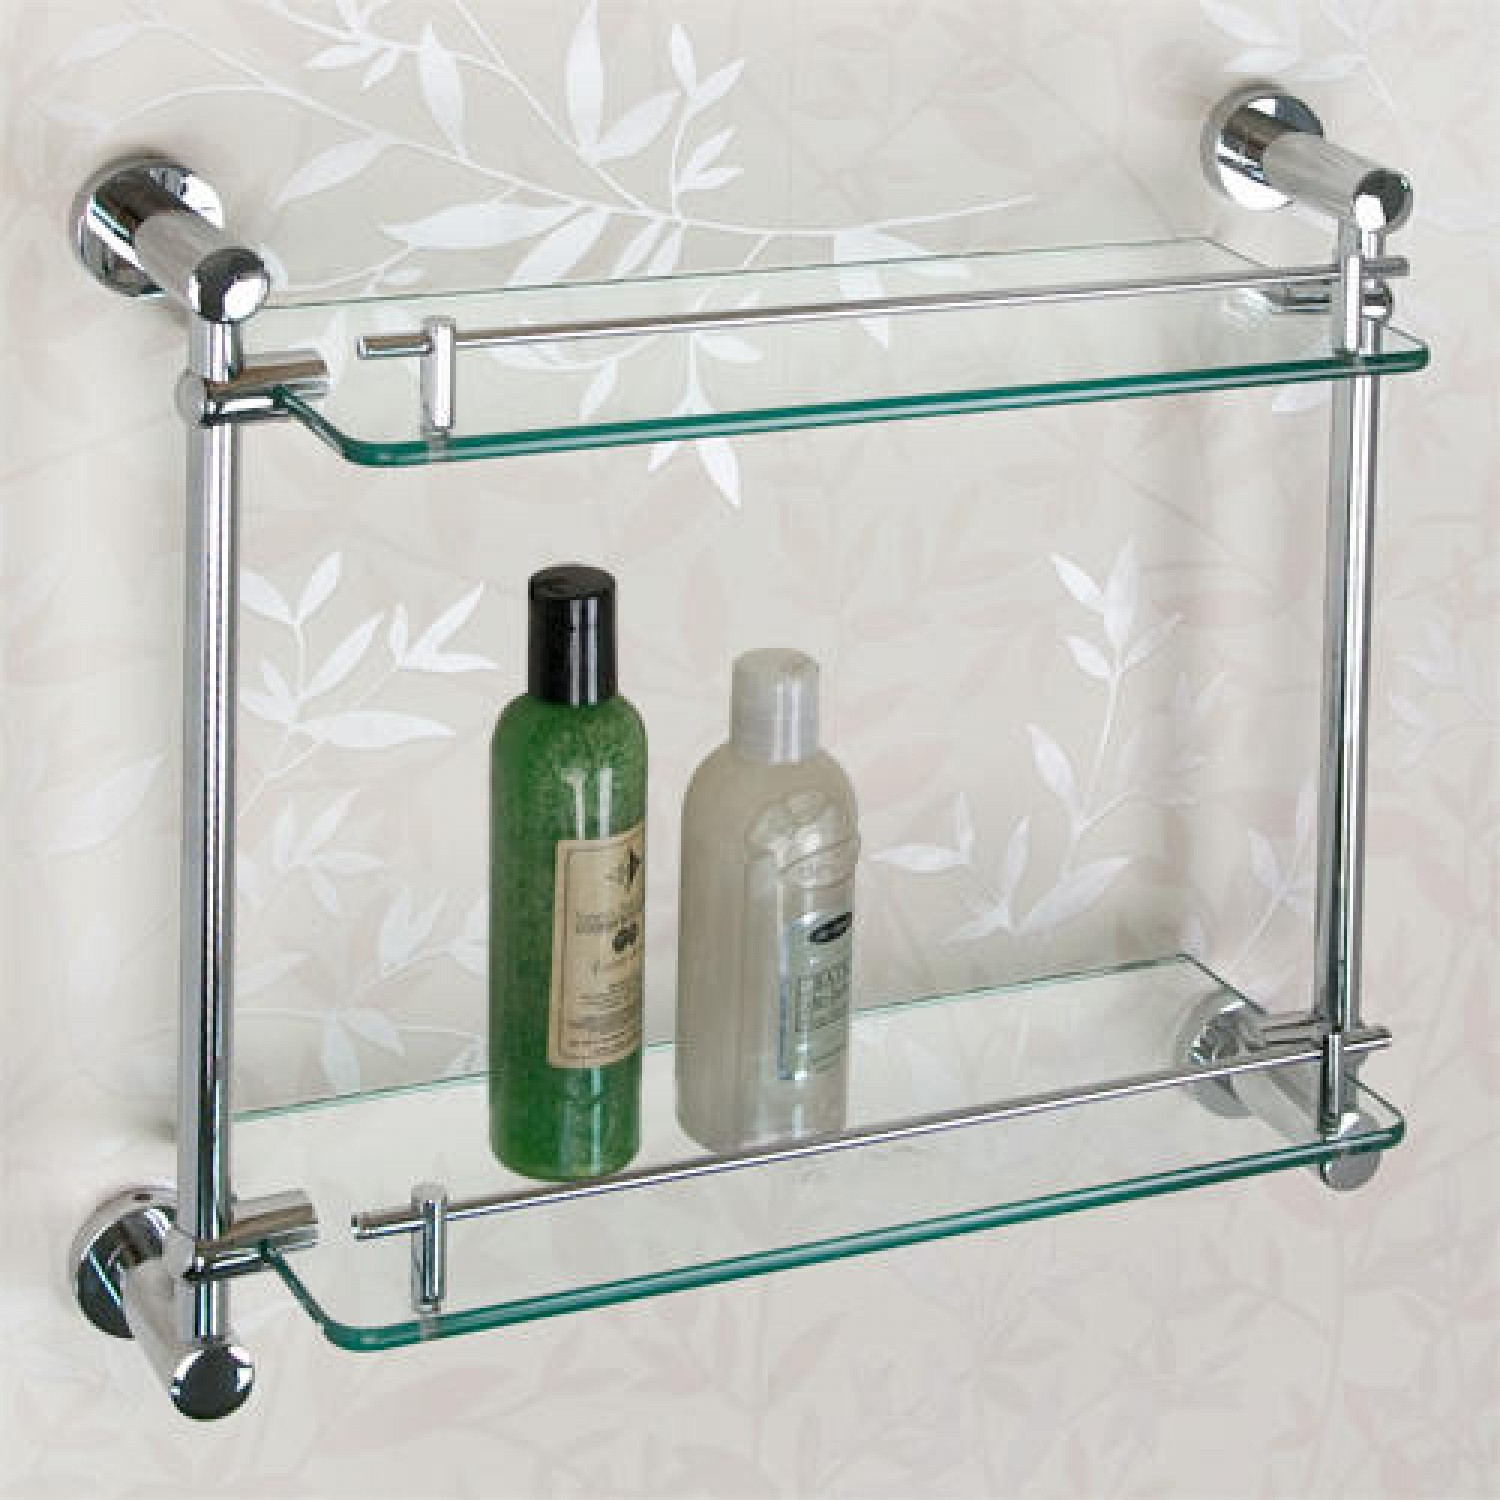 Elegant Zoom glass shelving for bathroom